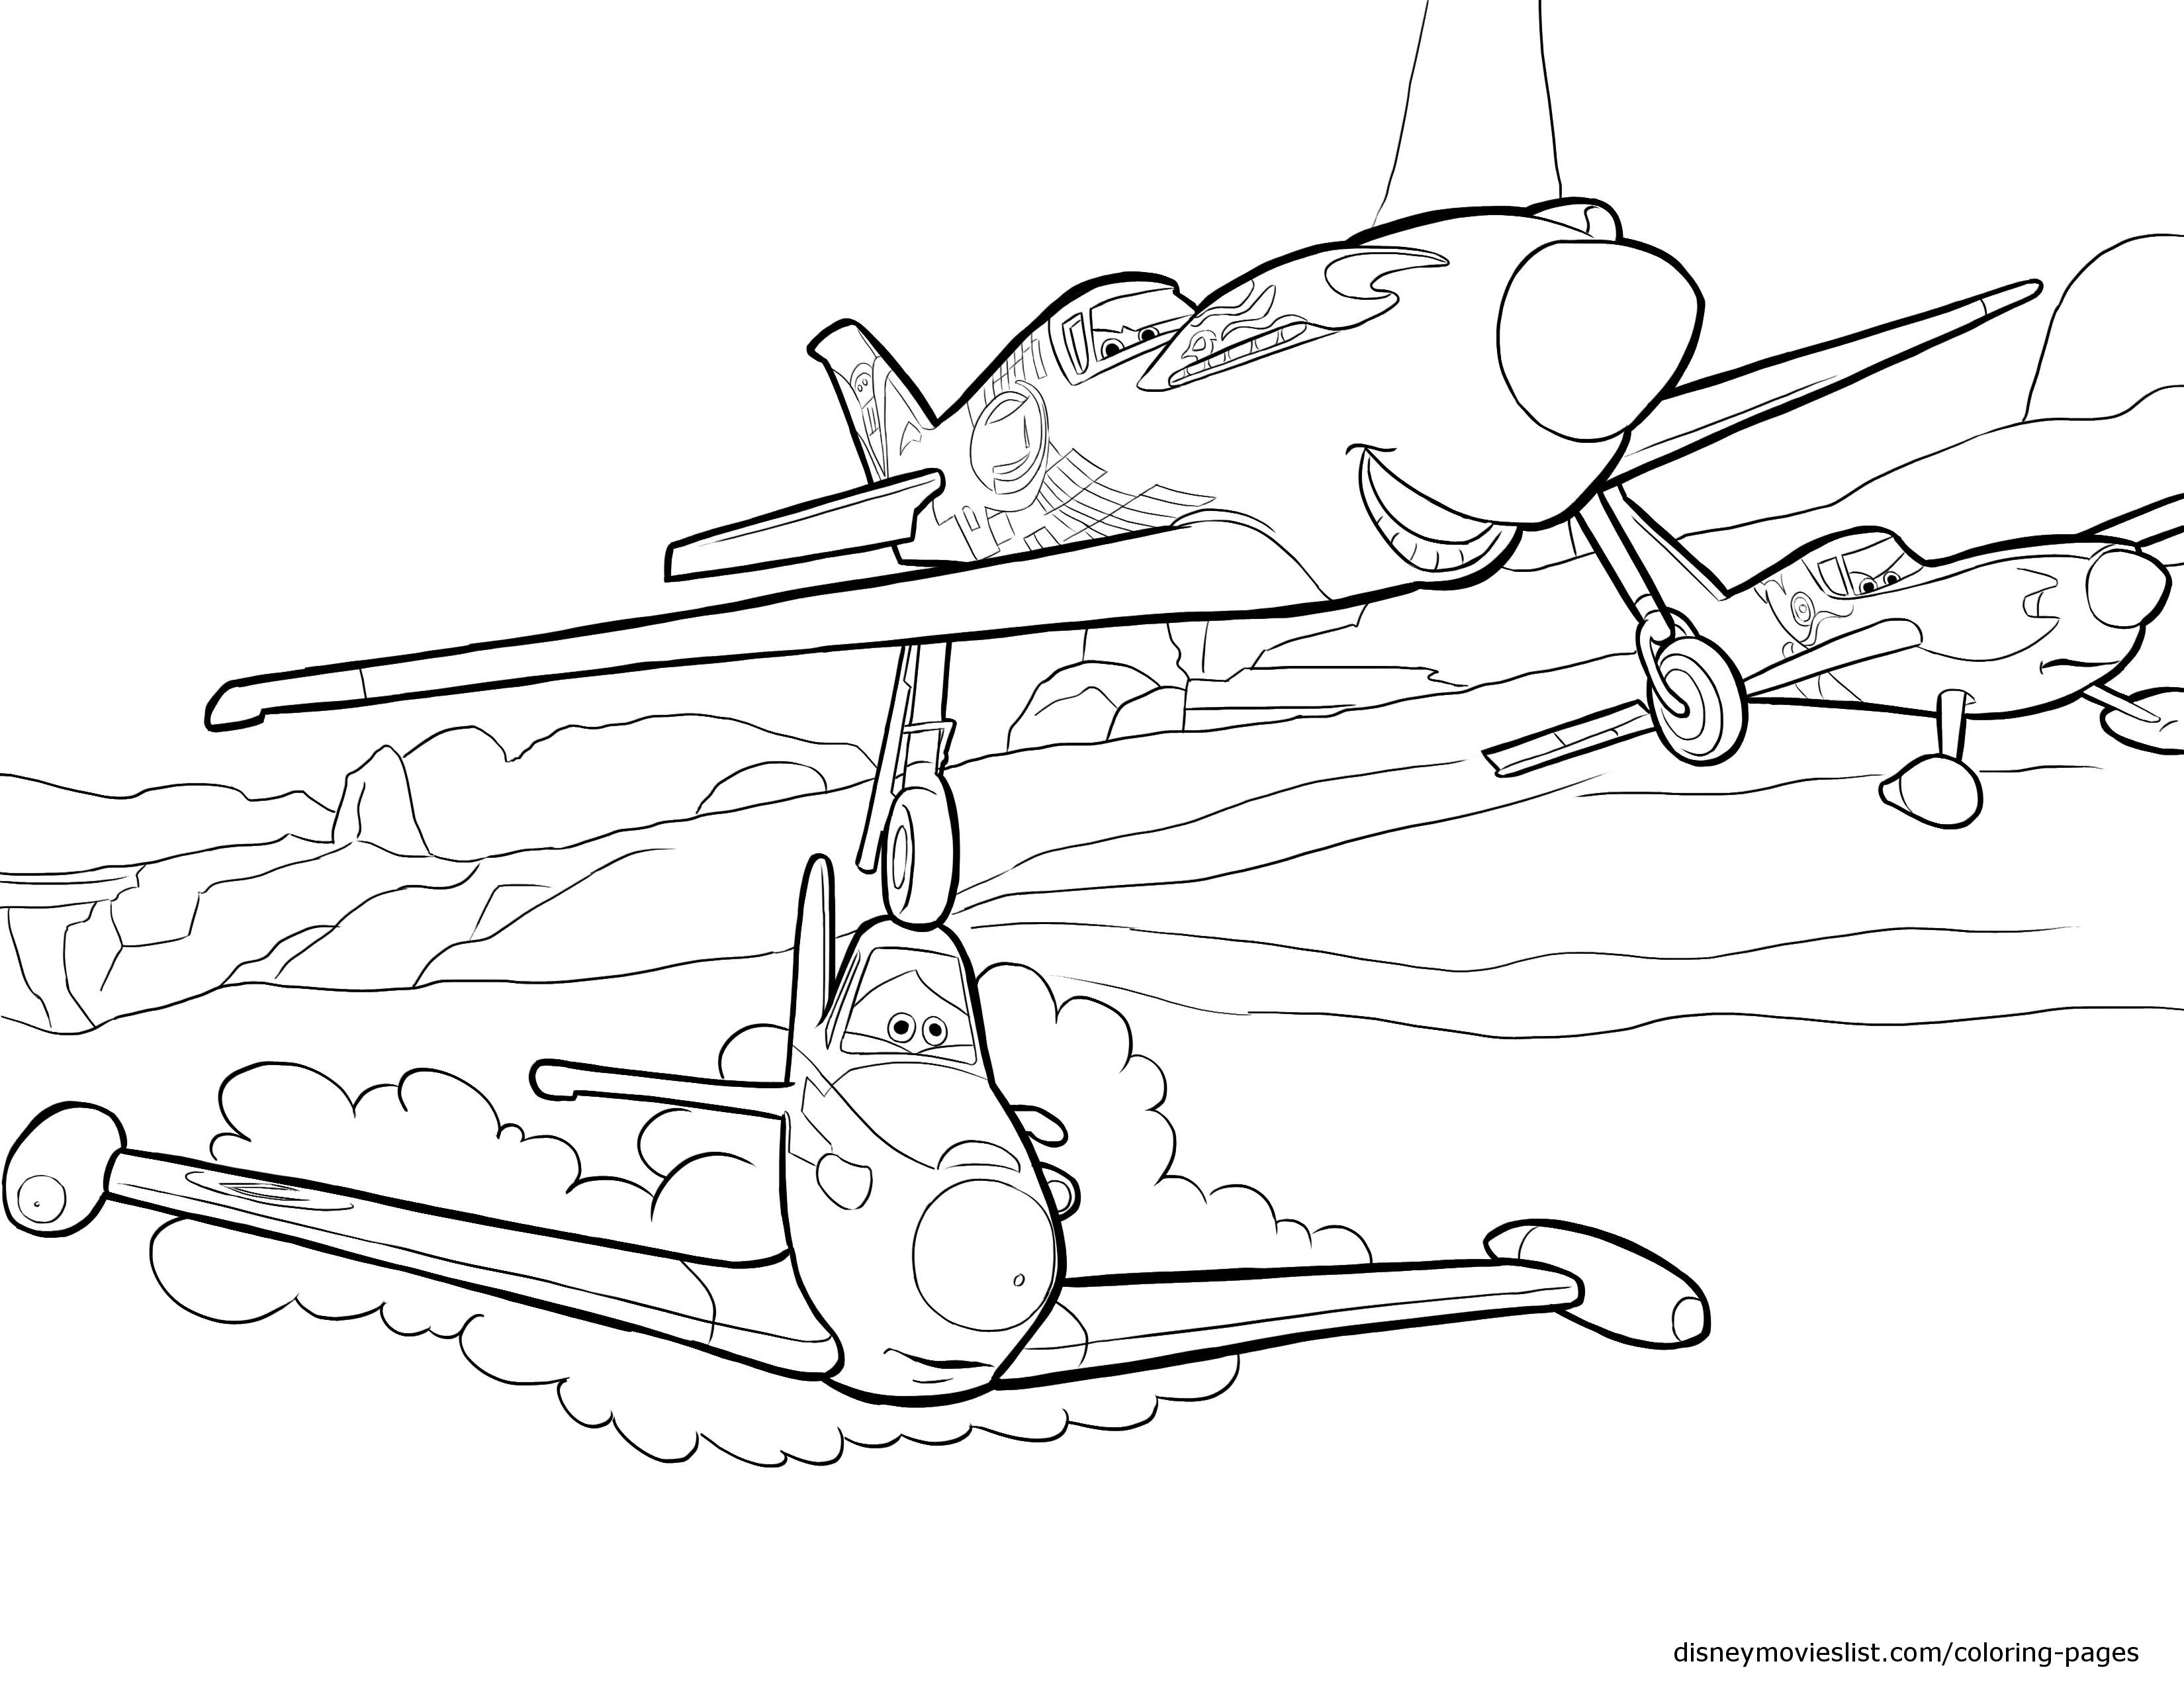 Paper Airplane Coloring Page At Getdrawings Com Free For Personal